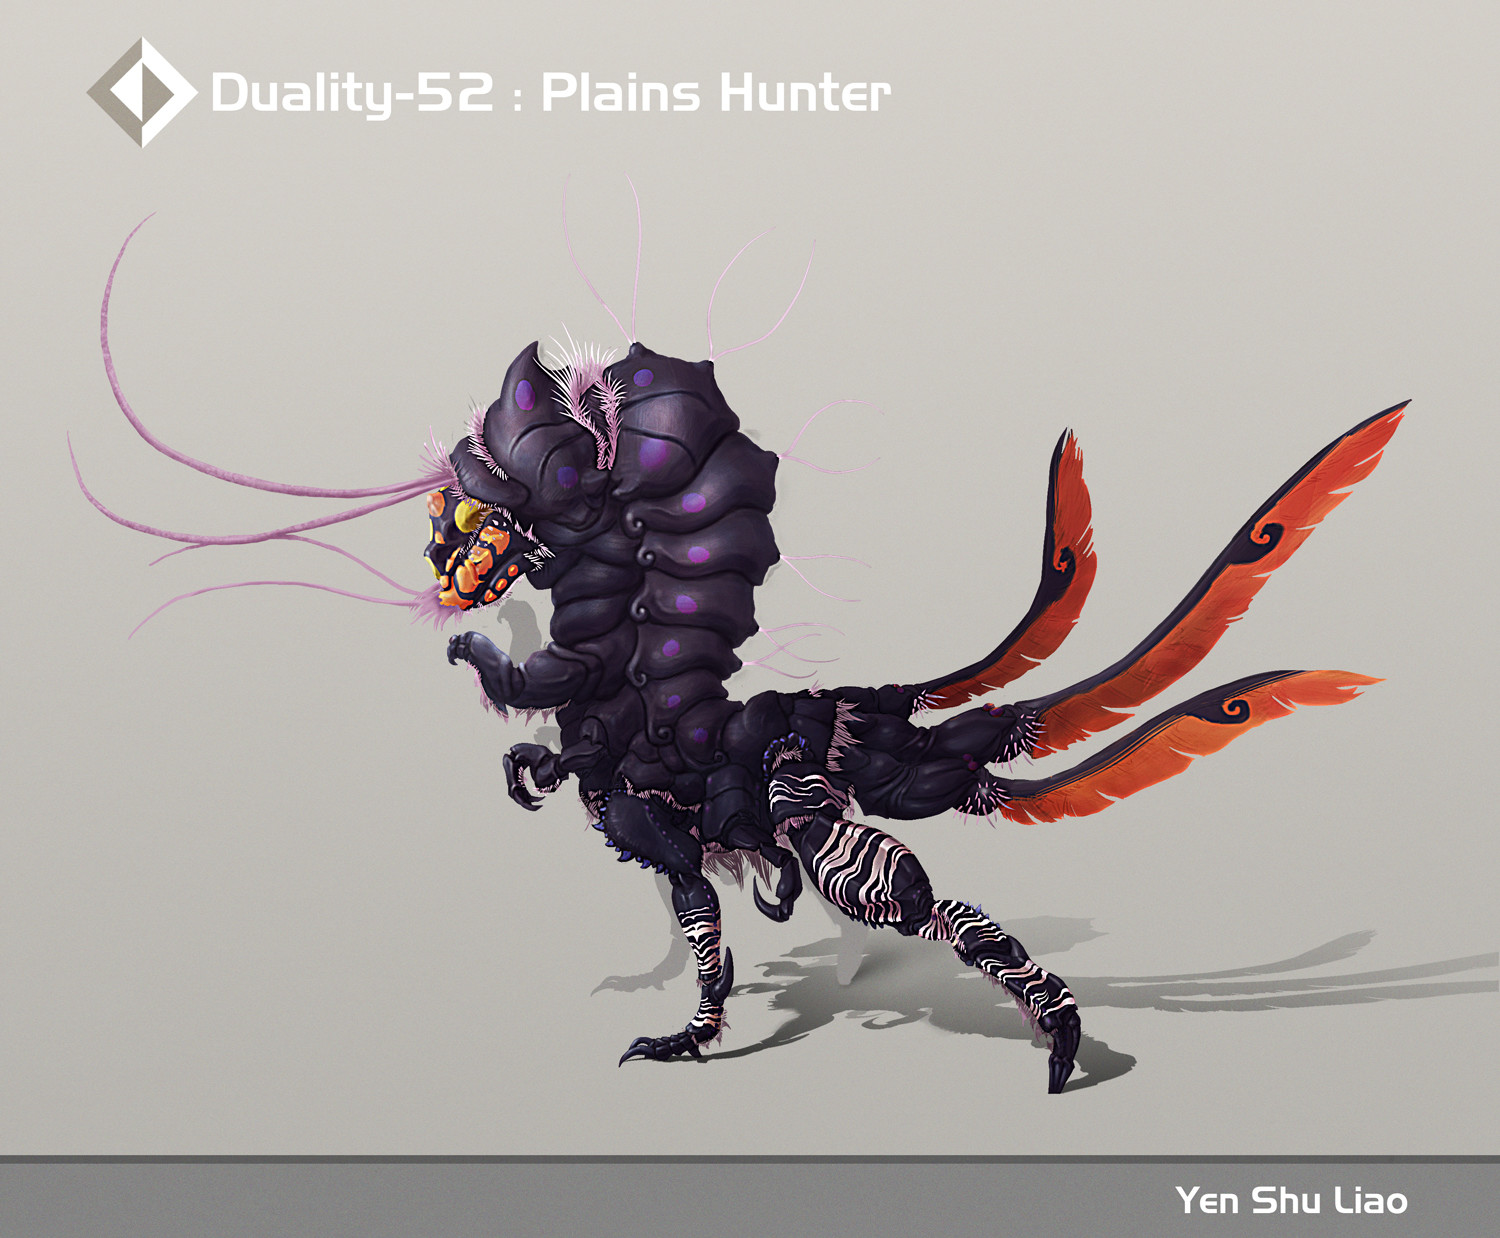 Duality-52: Plains Hunter